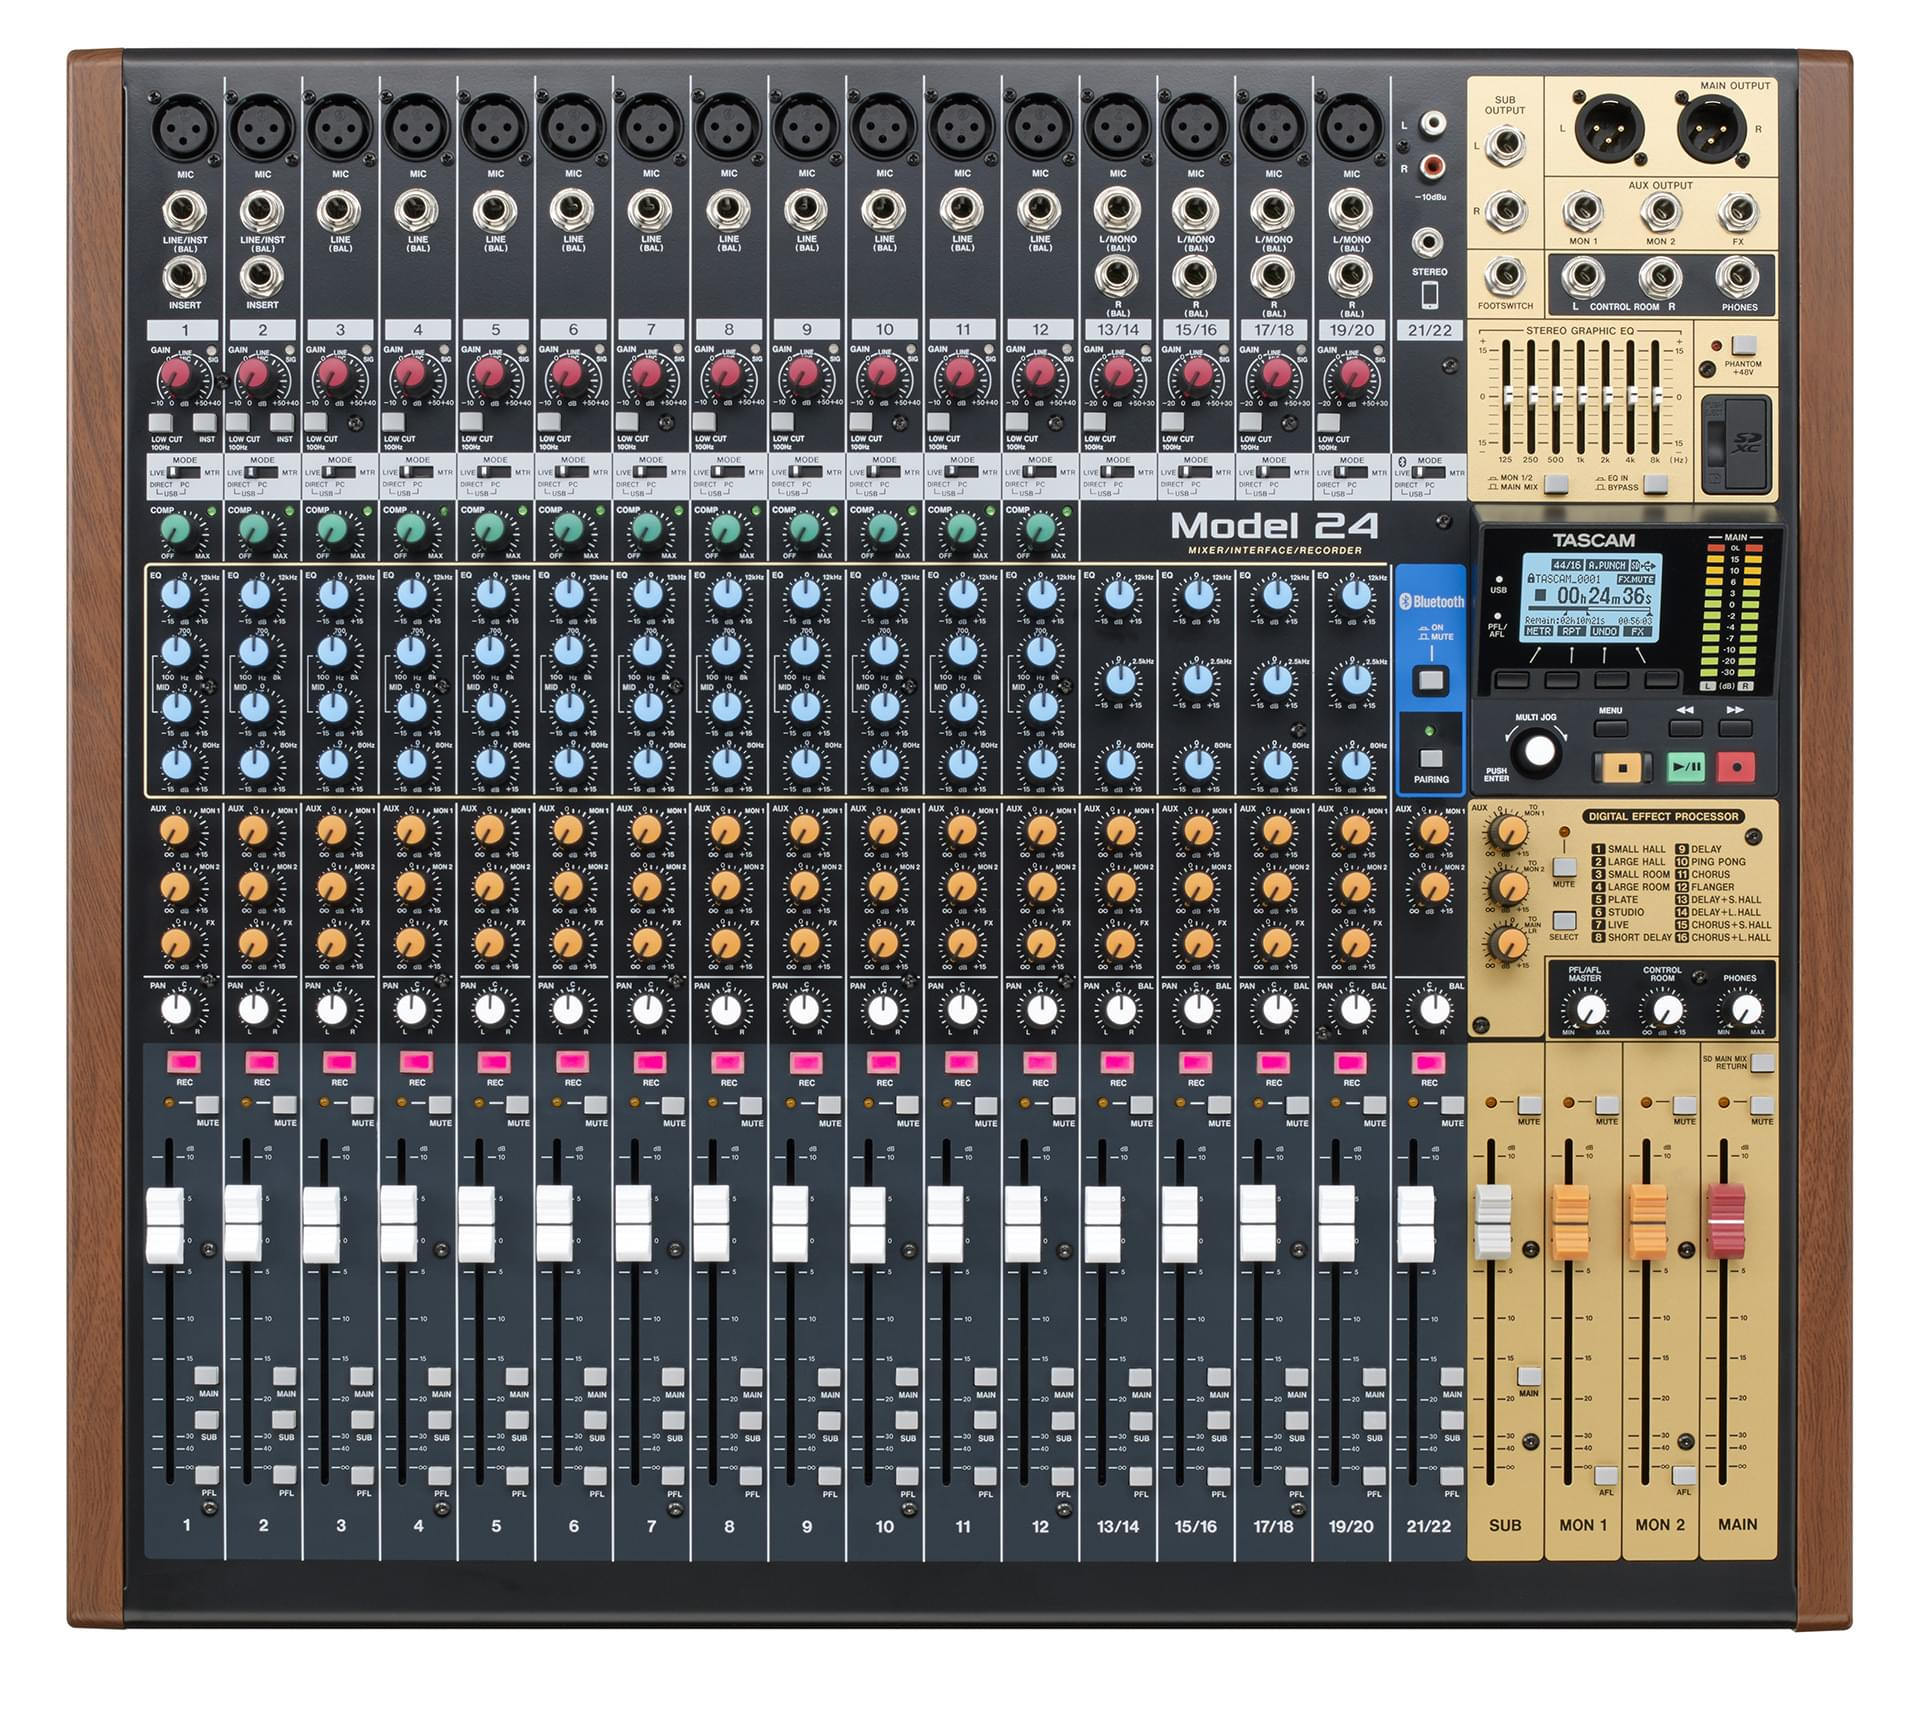 N24 Now Tascam Model 24 22 Channel Analogue Mixer With 24 Track Digital